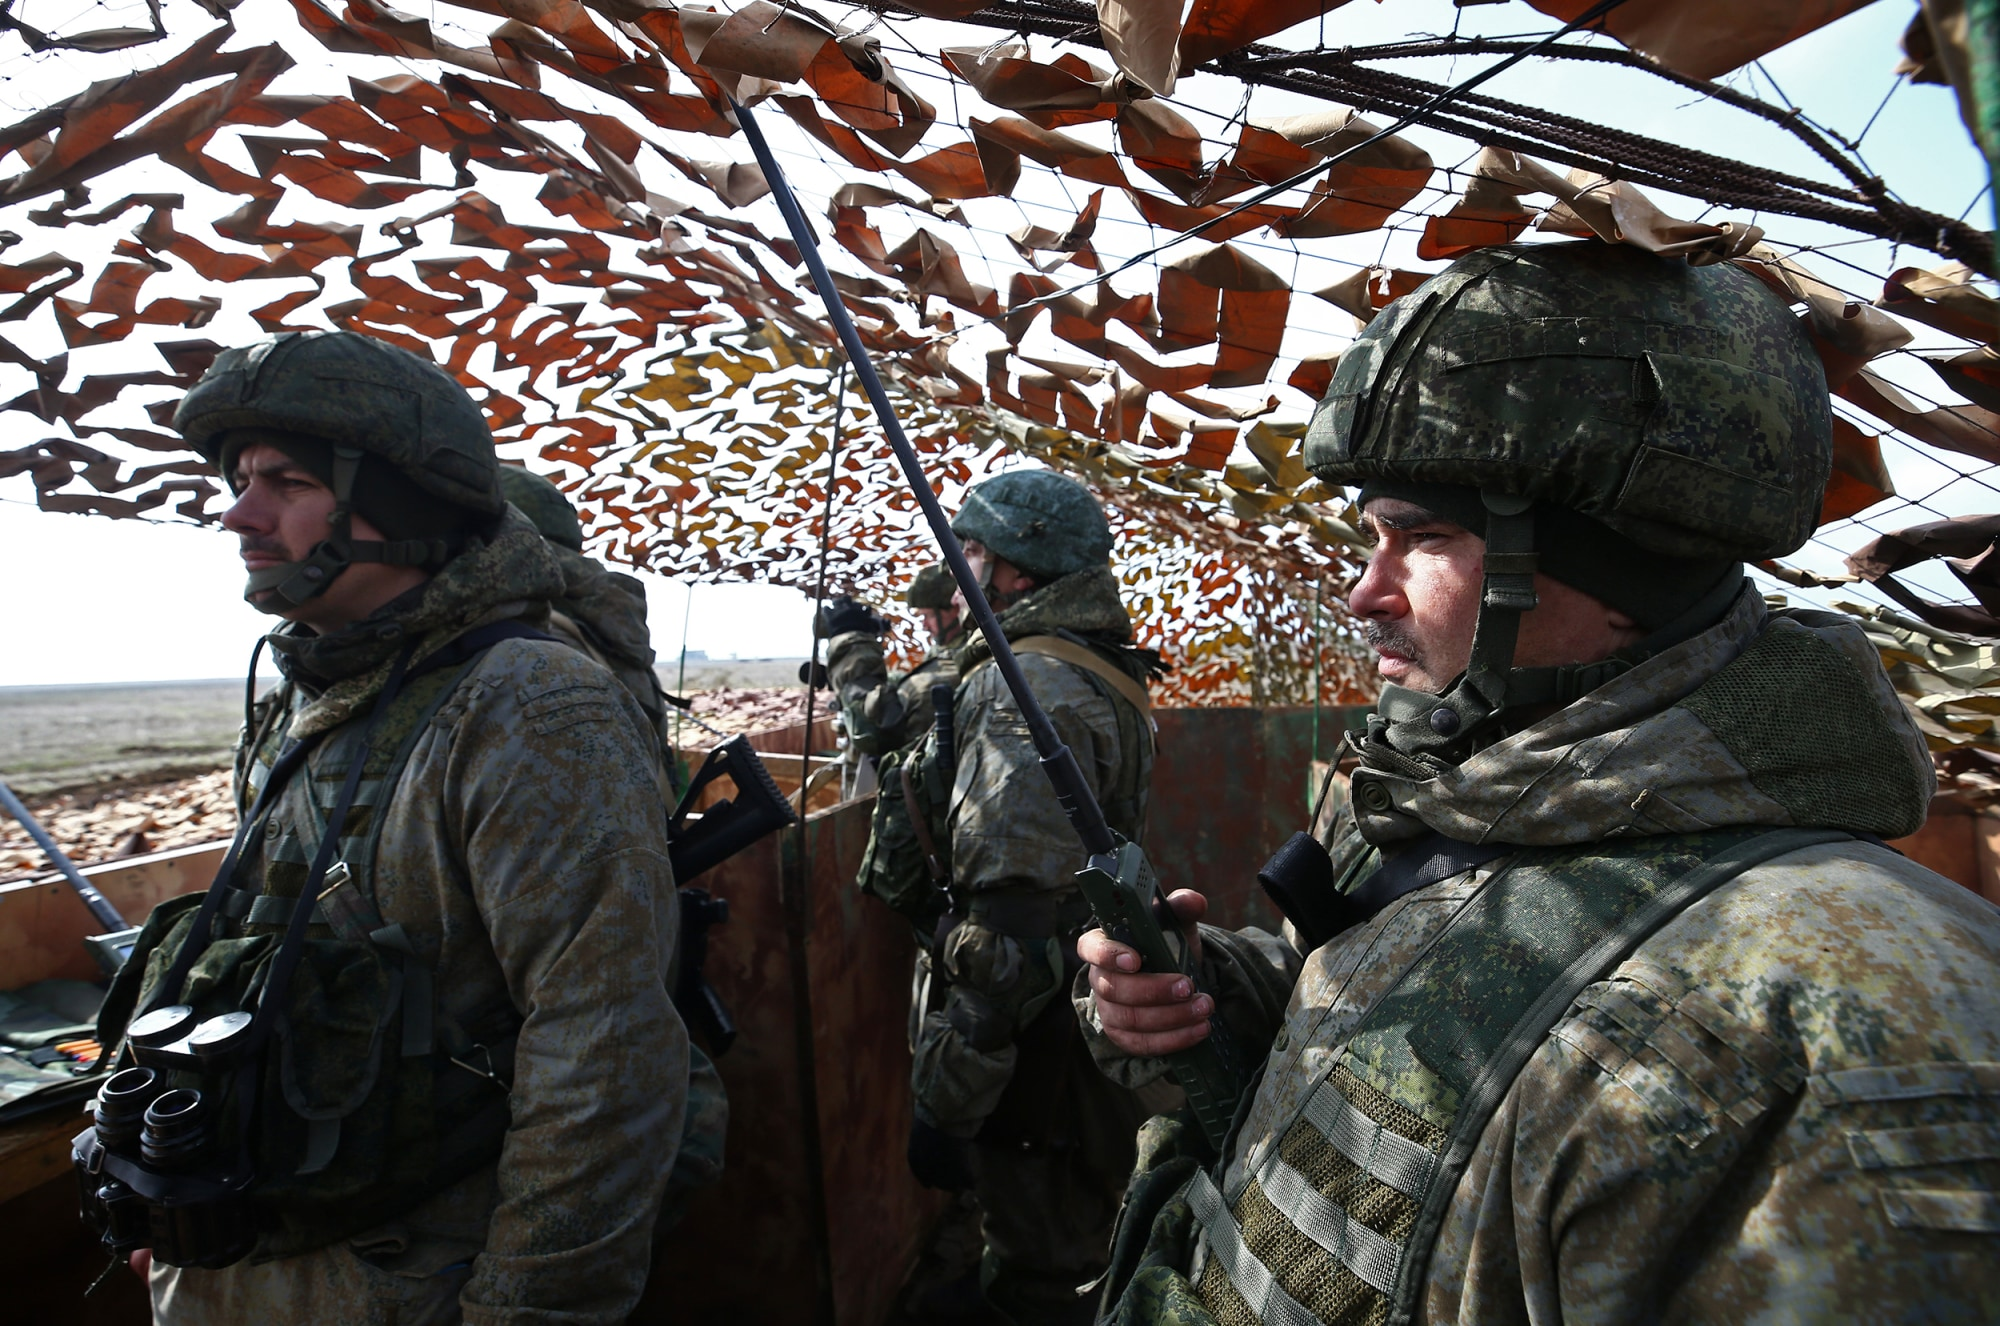 NBC NEWS – Steady increase in Russian troops in Crimea on Ukraine border, Pentagon says